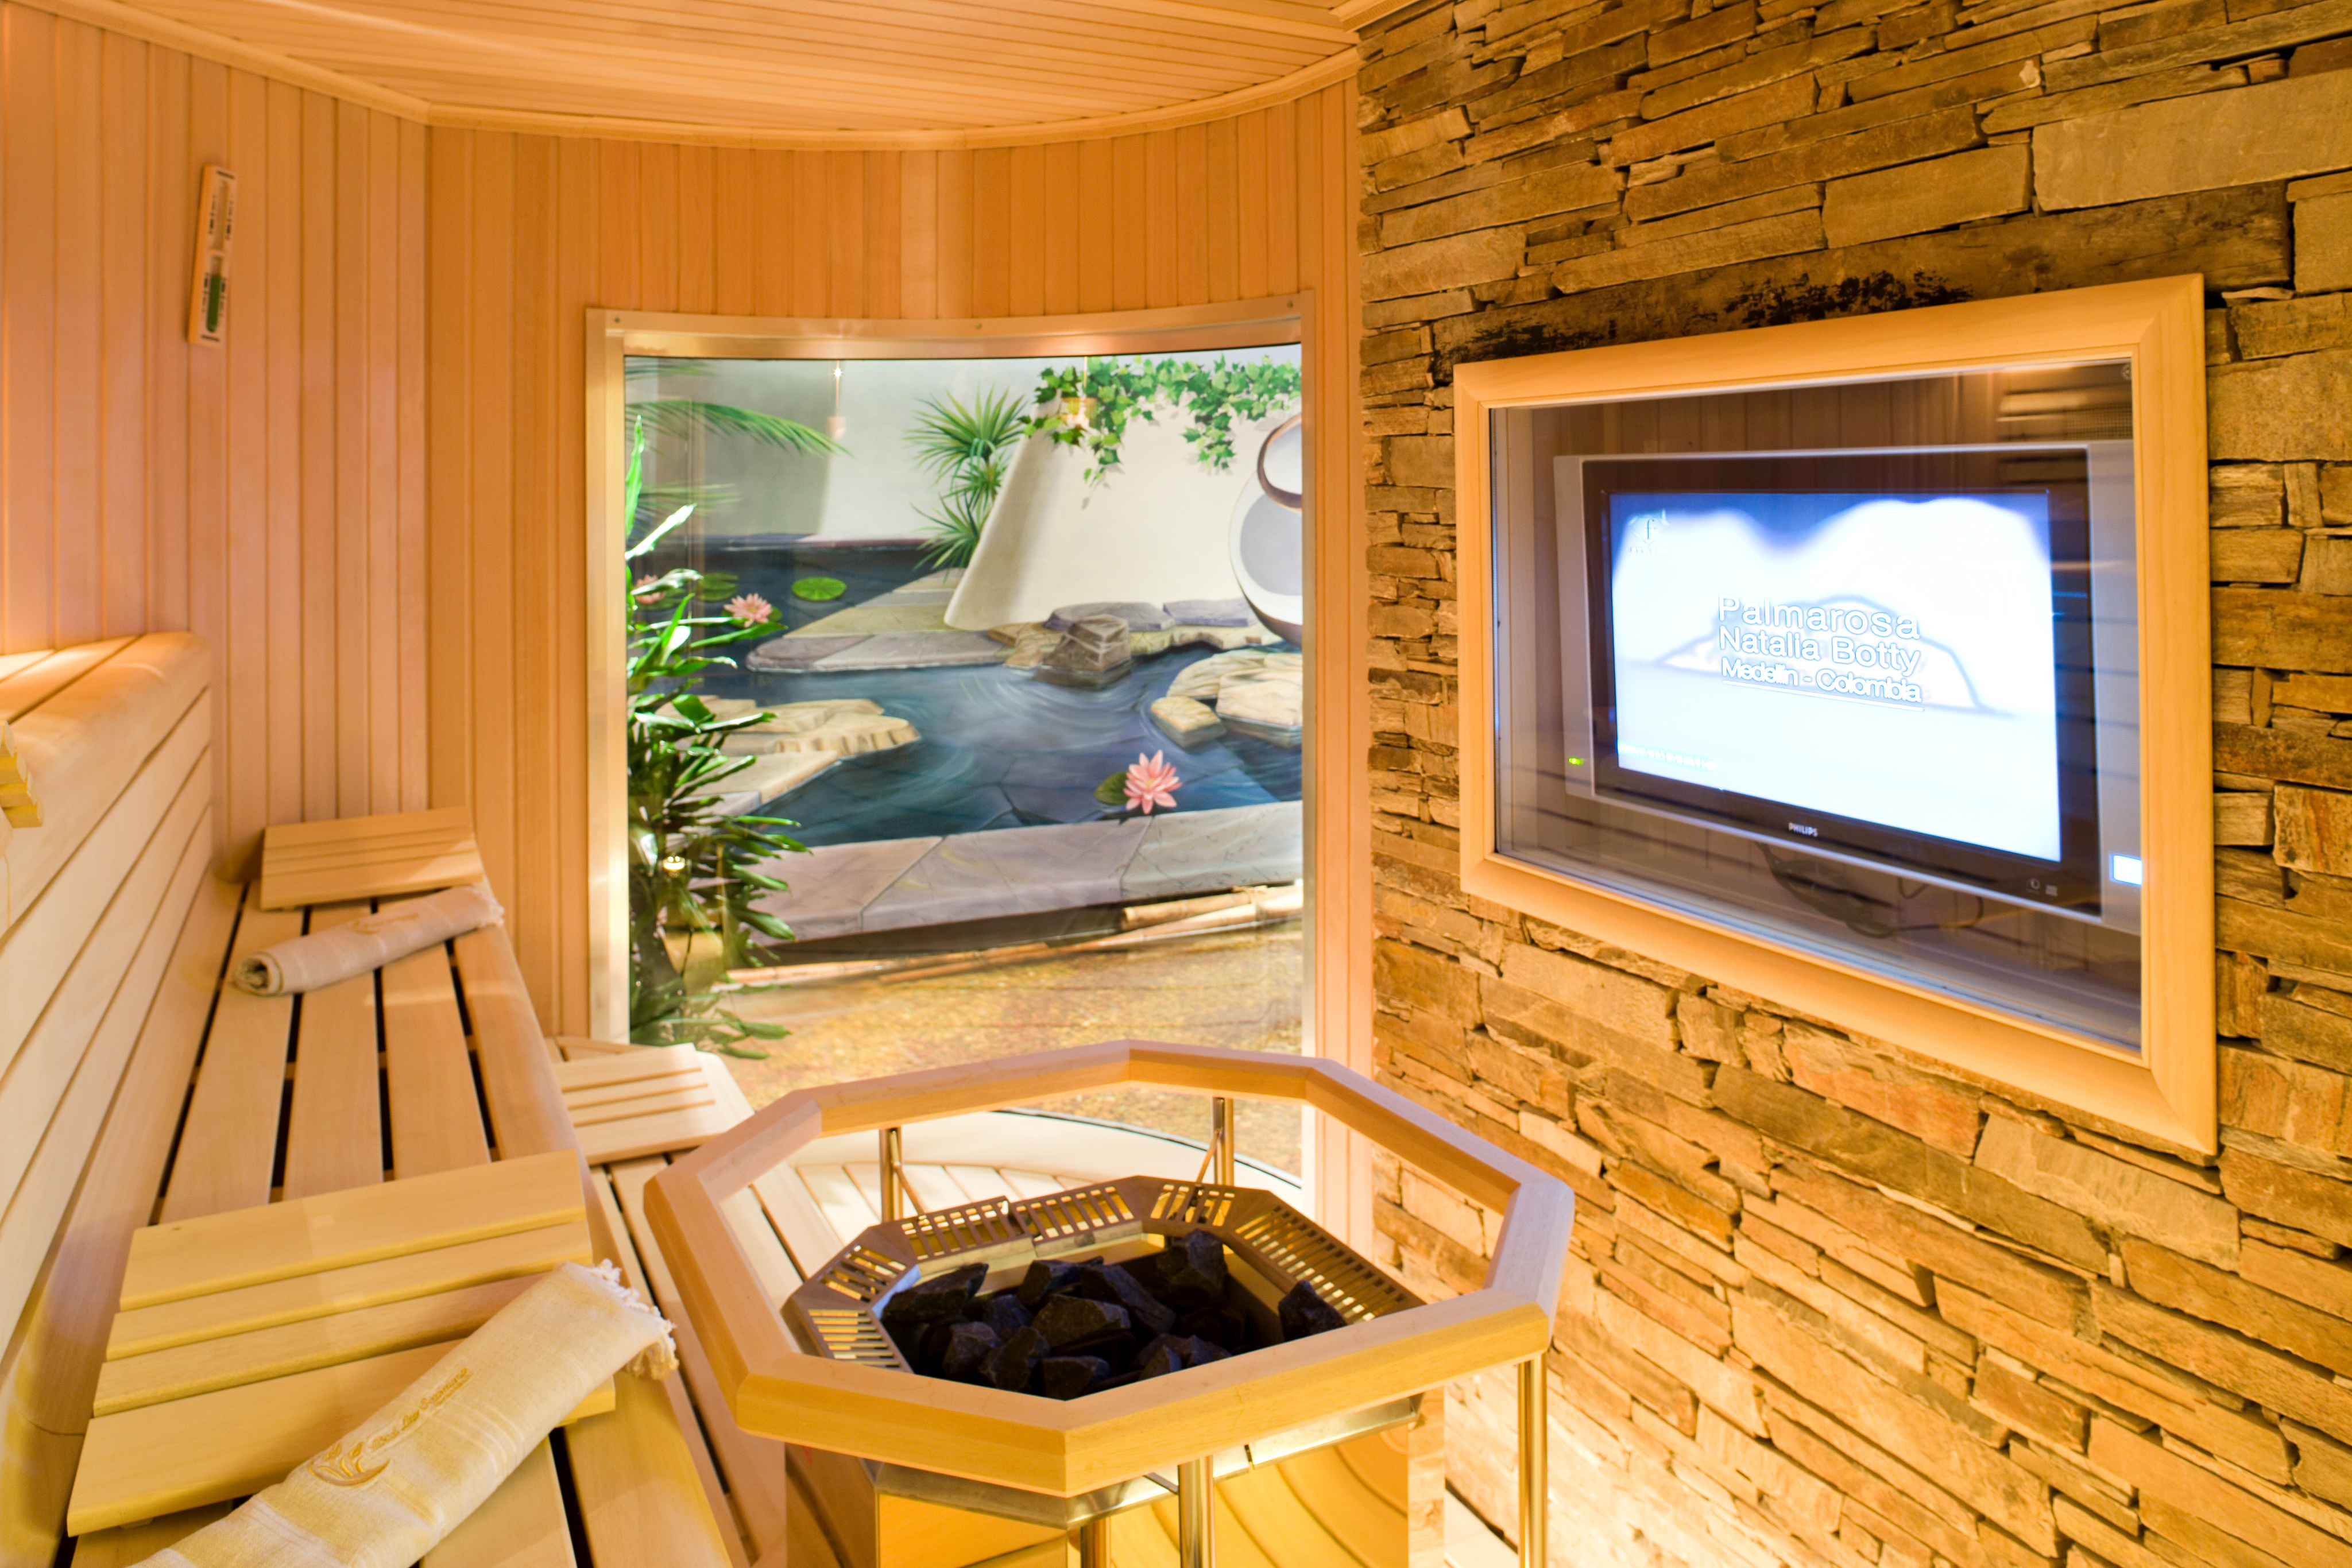 Sauna Construction Best Layout Room